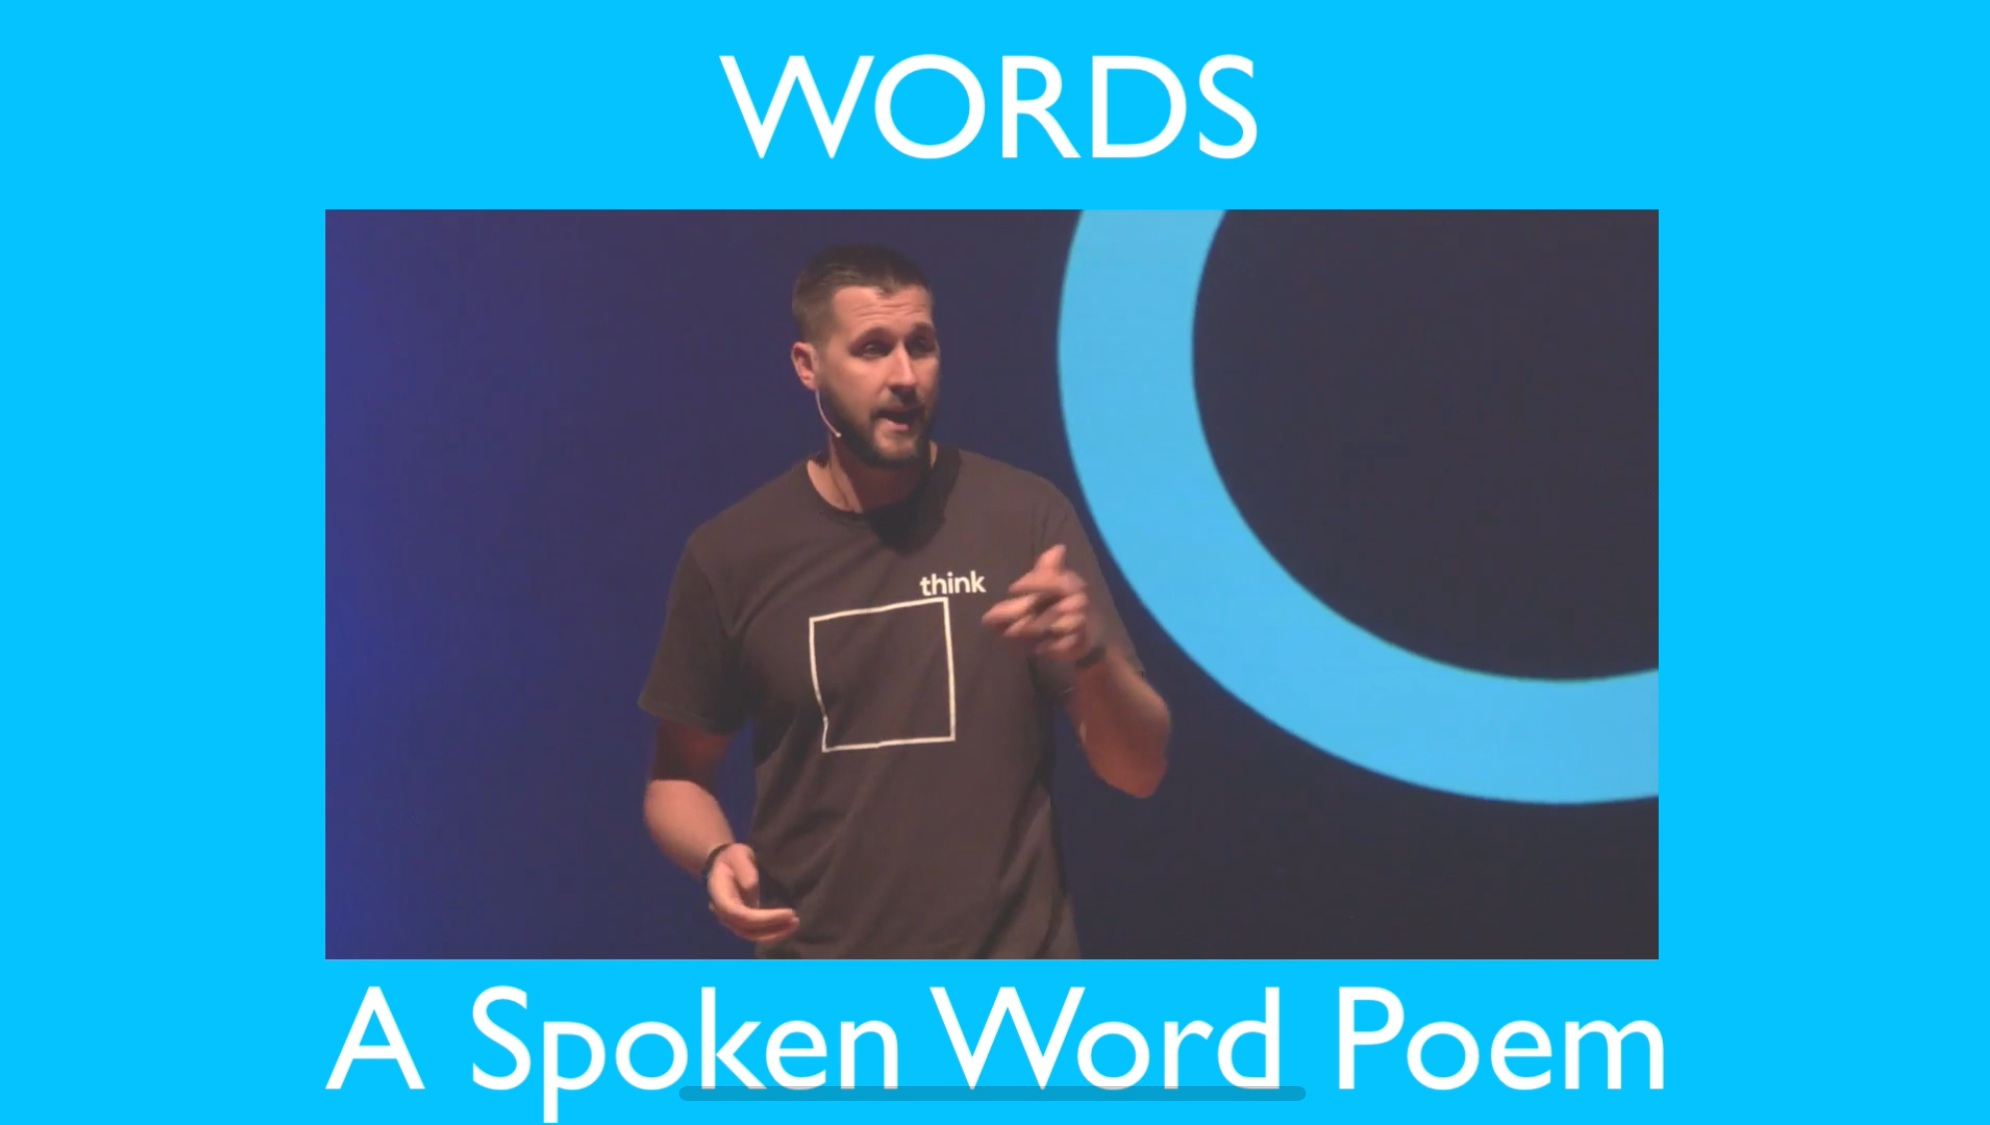 WORDS - A Spoken Word Poem